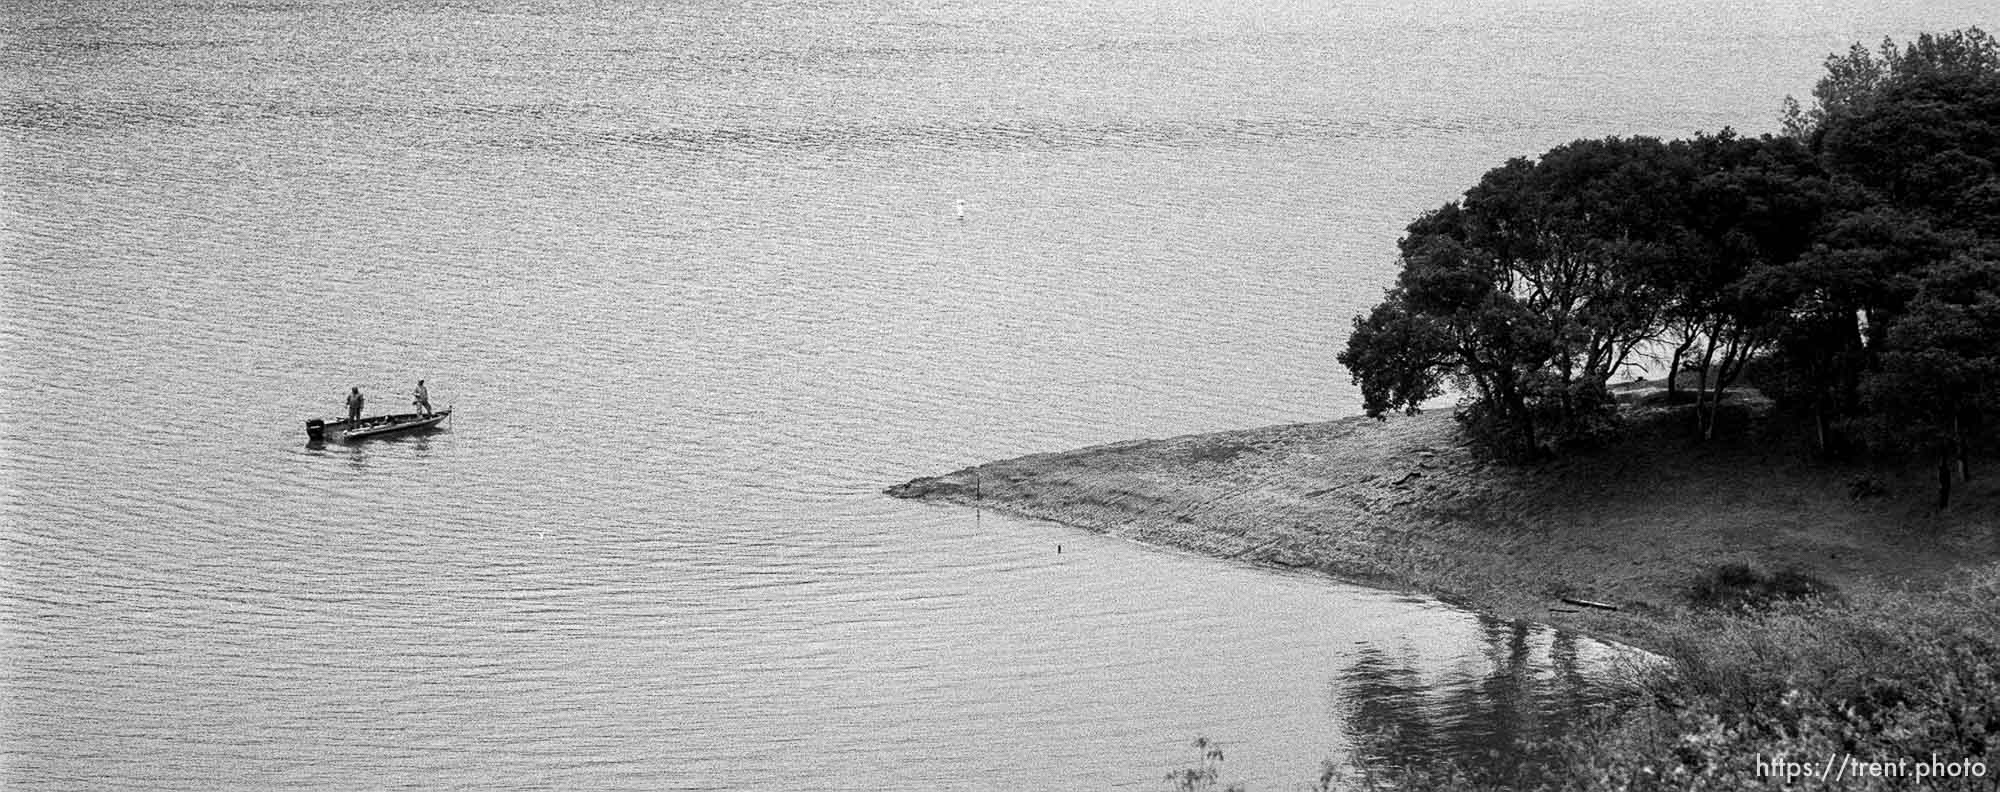 People fishing from boats in the San Pablo Reservoir